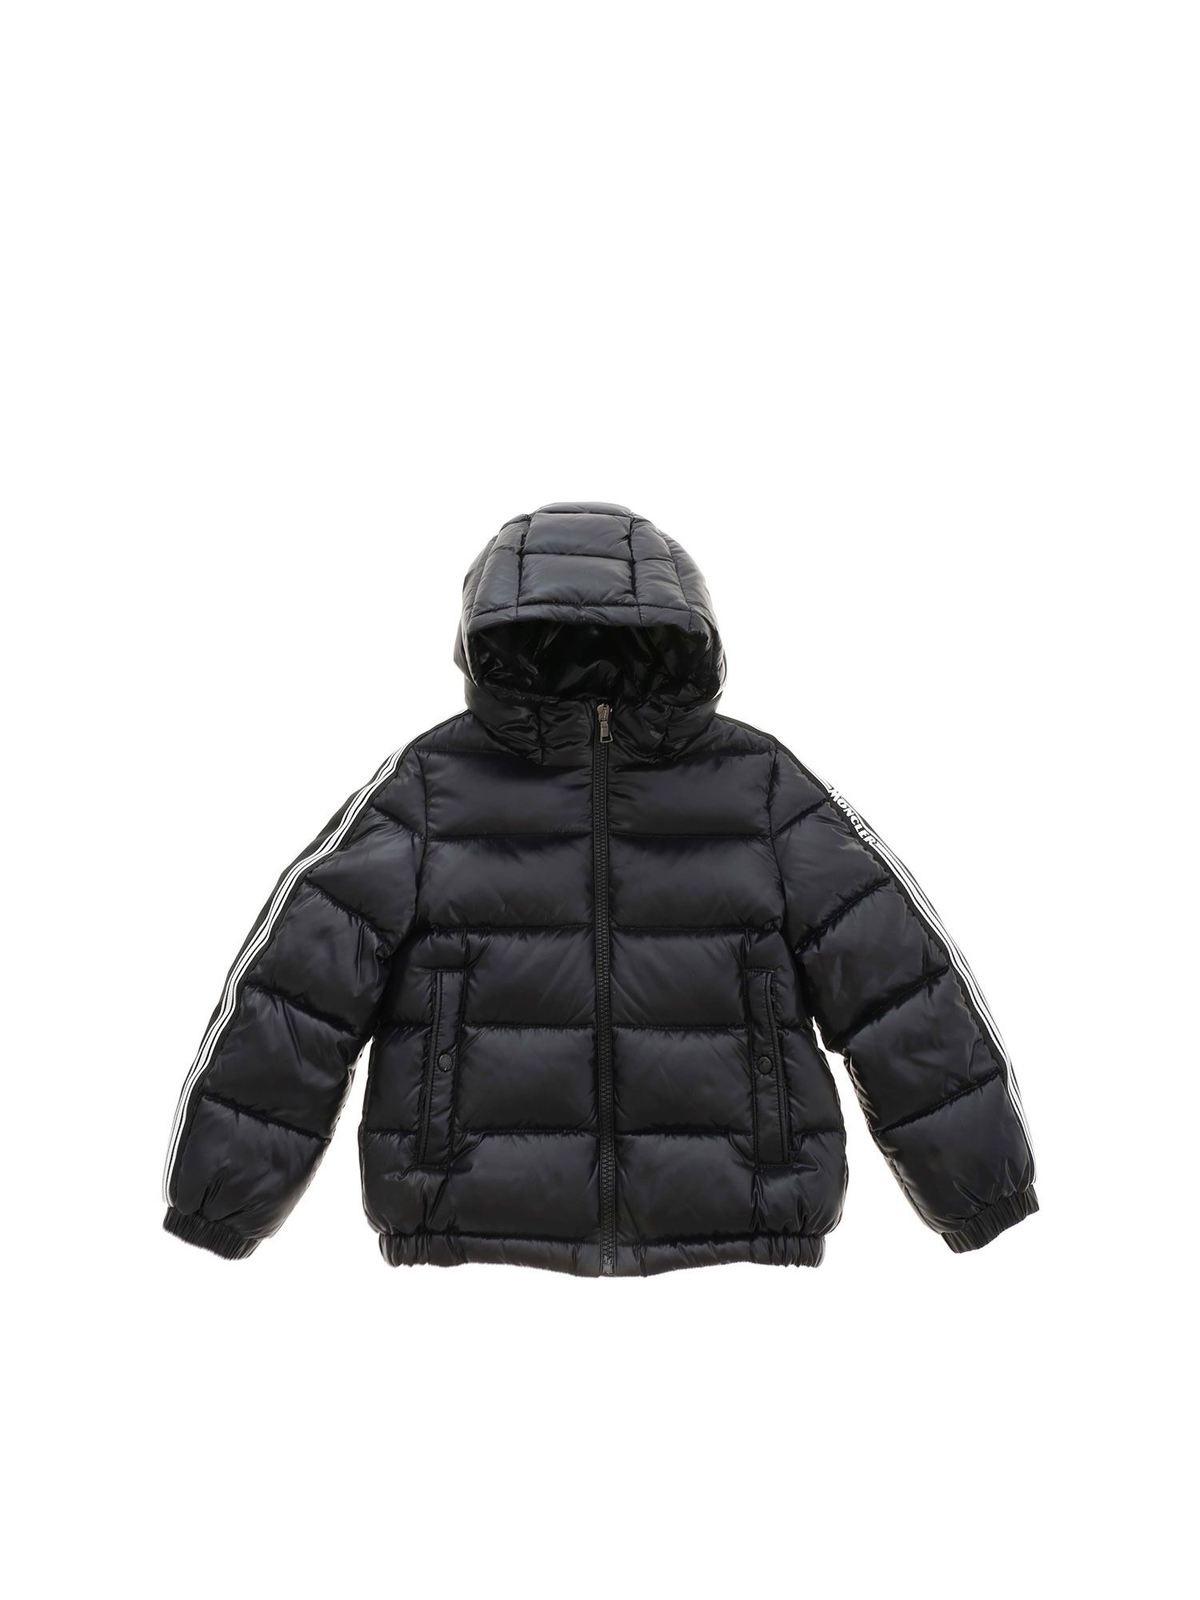 MONCLER JR AL BLACK DOWN JACKET FEATURING HOOD